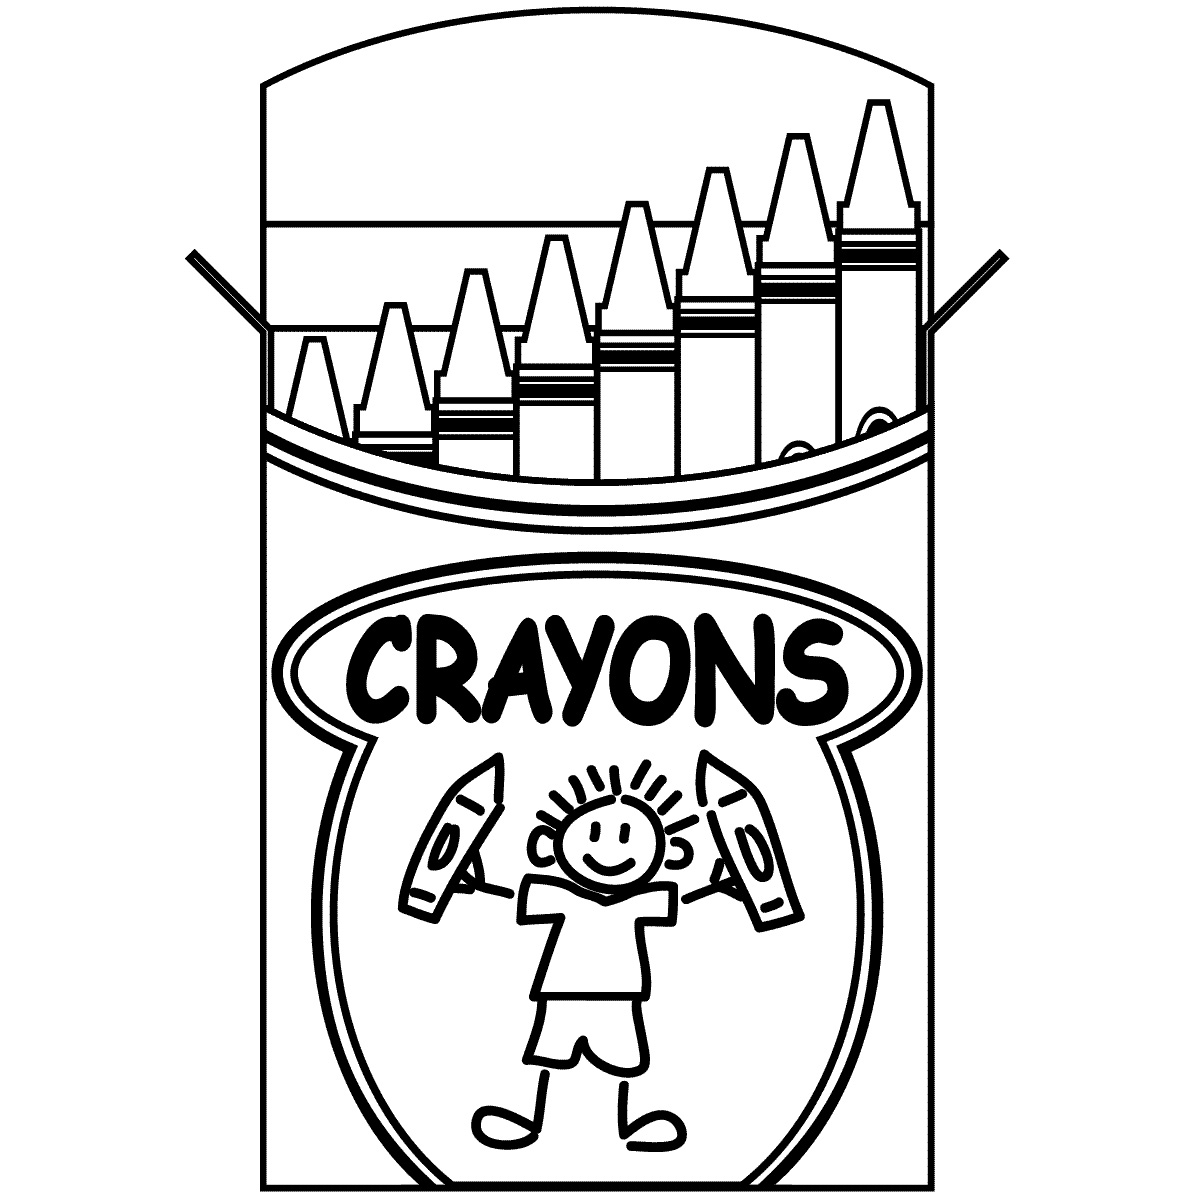 Amd clipart crayon Clipart Free bookworm%20clipart%20black%20and%20white Pencil And